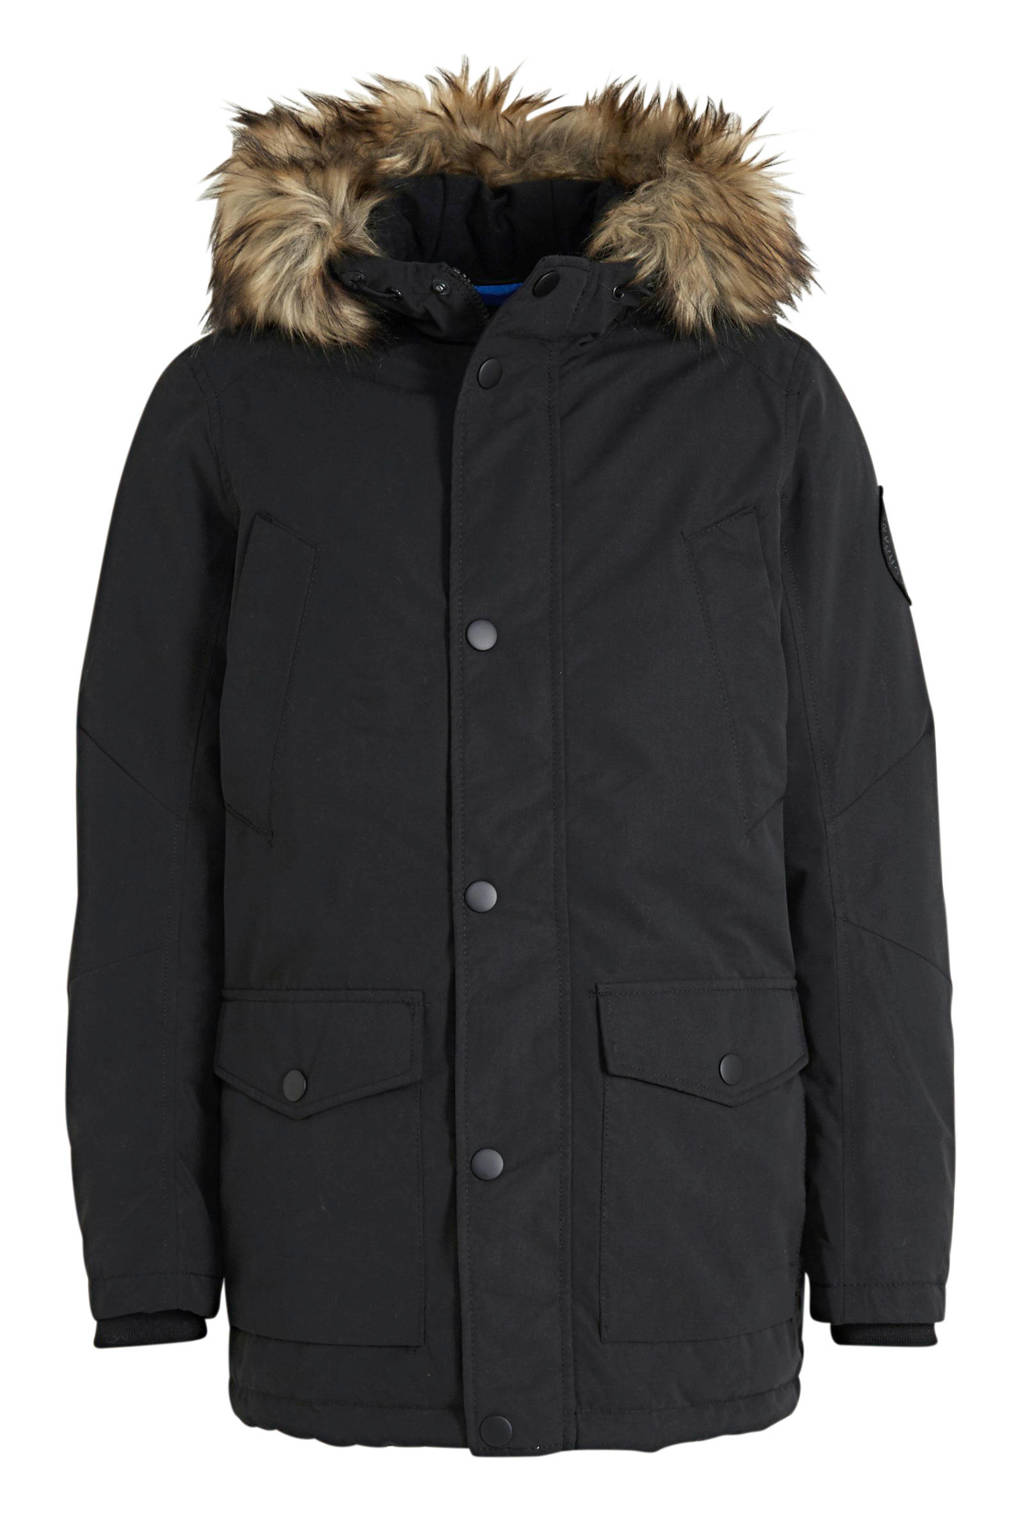 JACK & JONES JUNIOR parka winterjas Sky zwart, Zwart